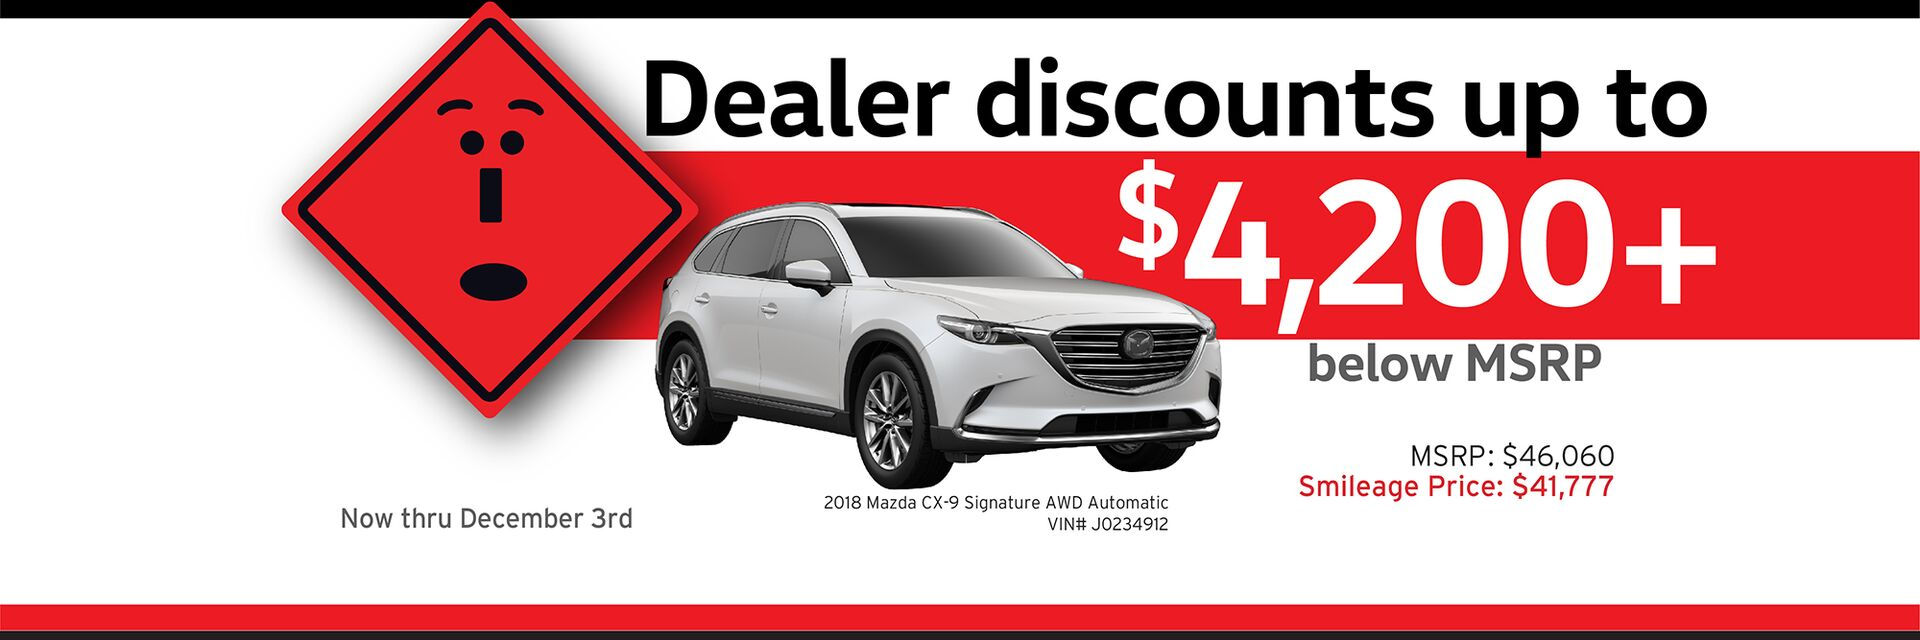 Capistrano Mazda Smileage discounts - Save up to $4,200+ below MSRP